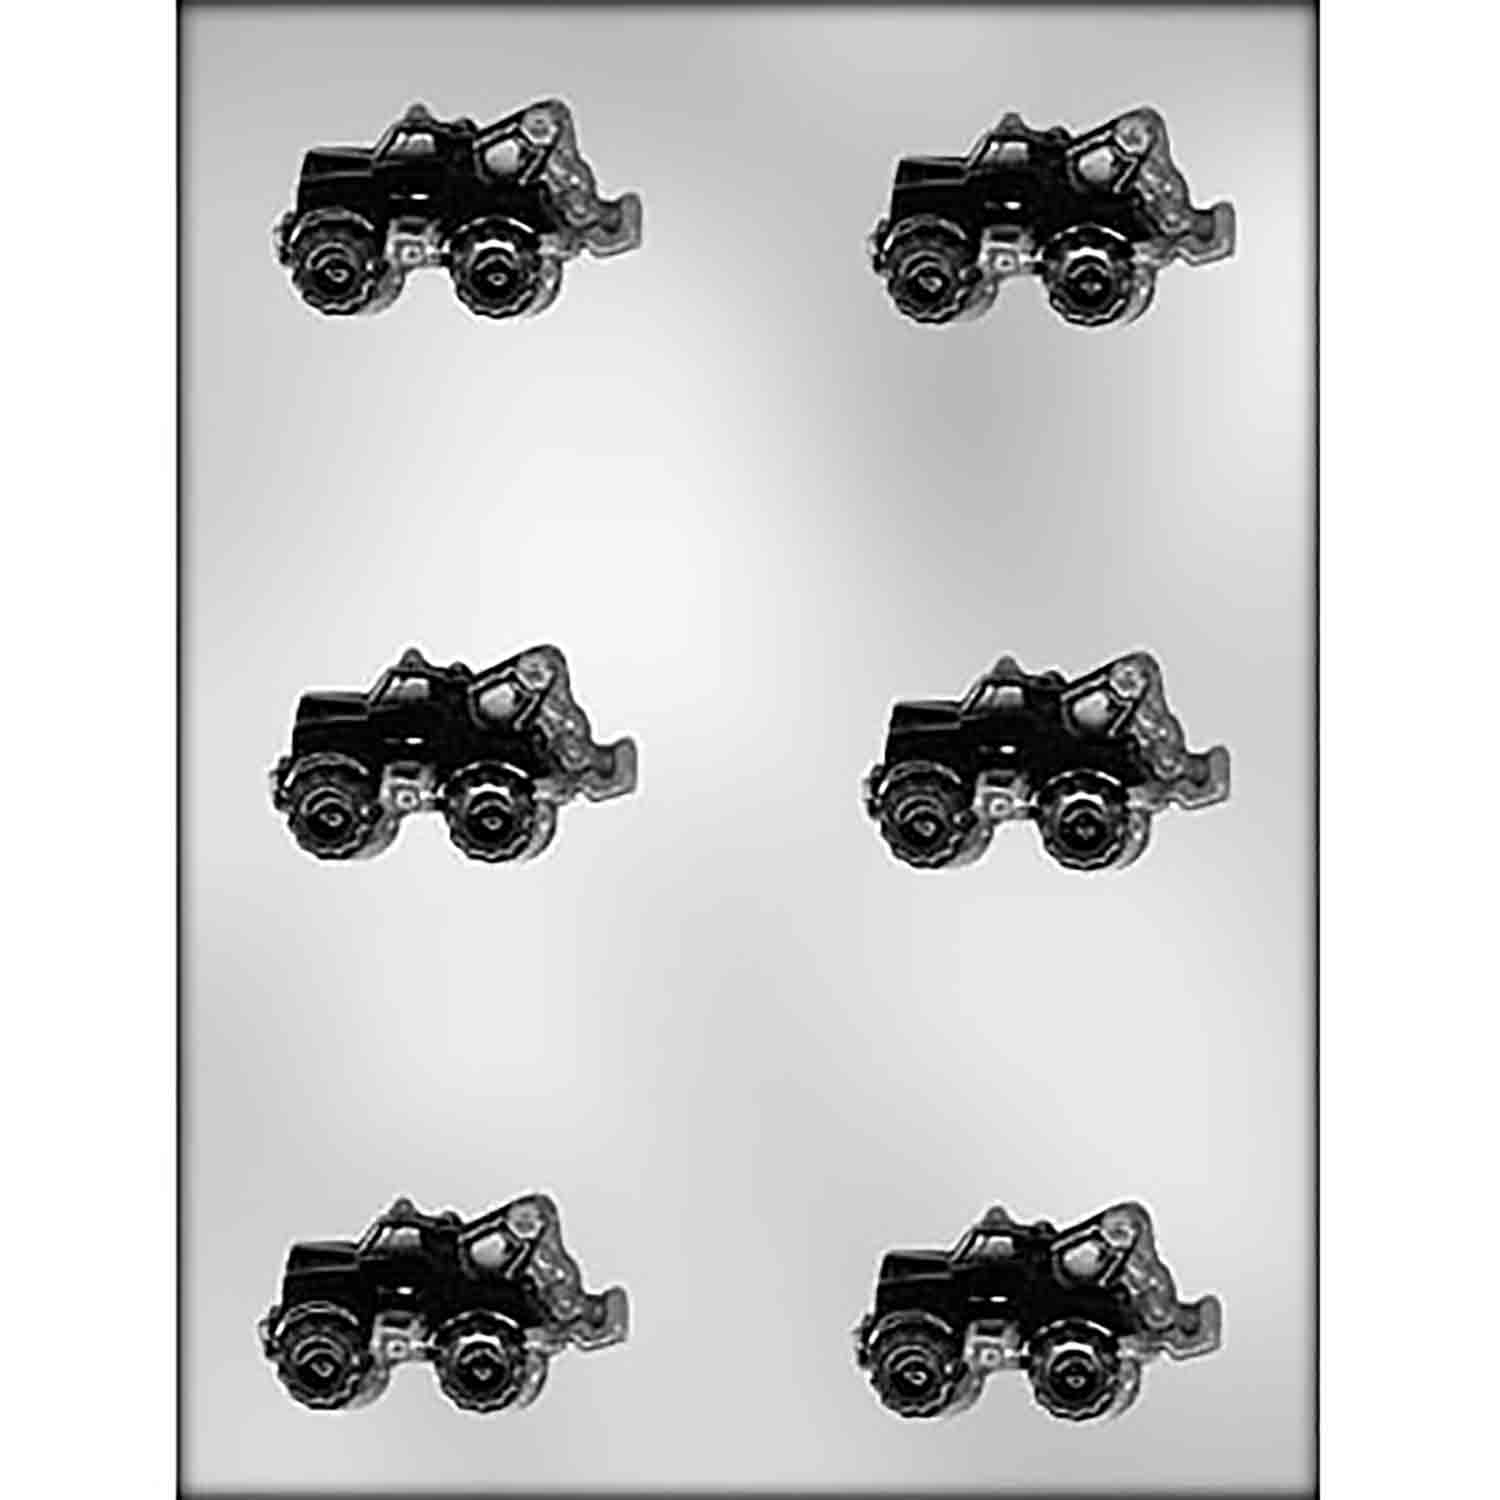 Tow Truck Chocolate Candy Mold